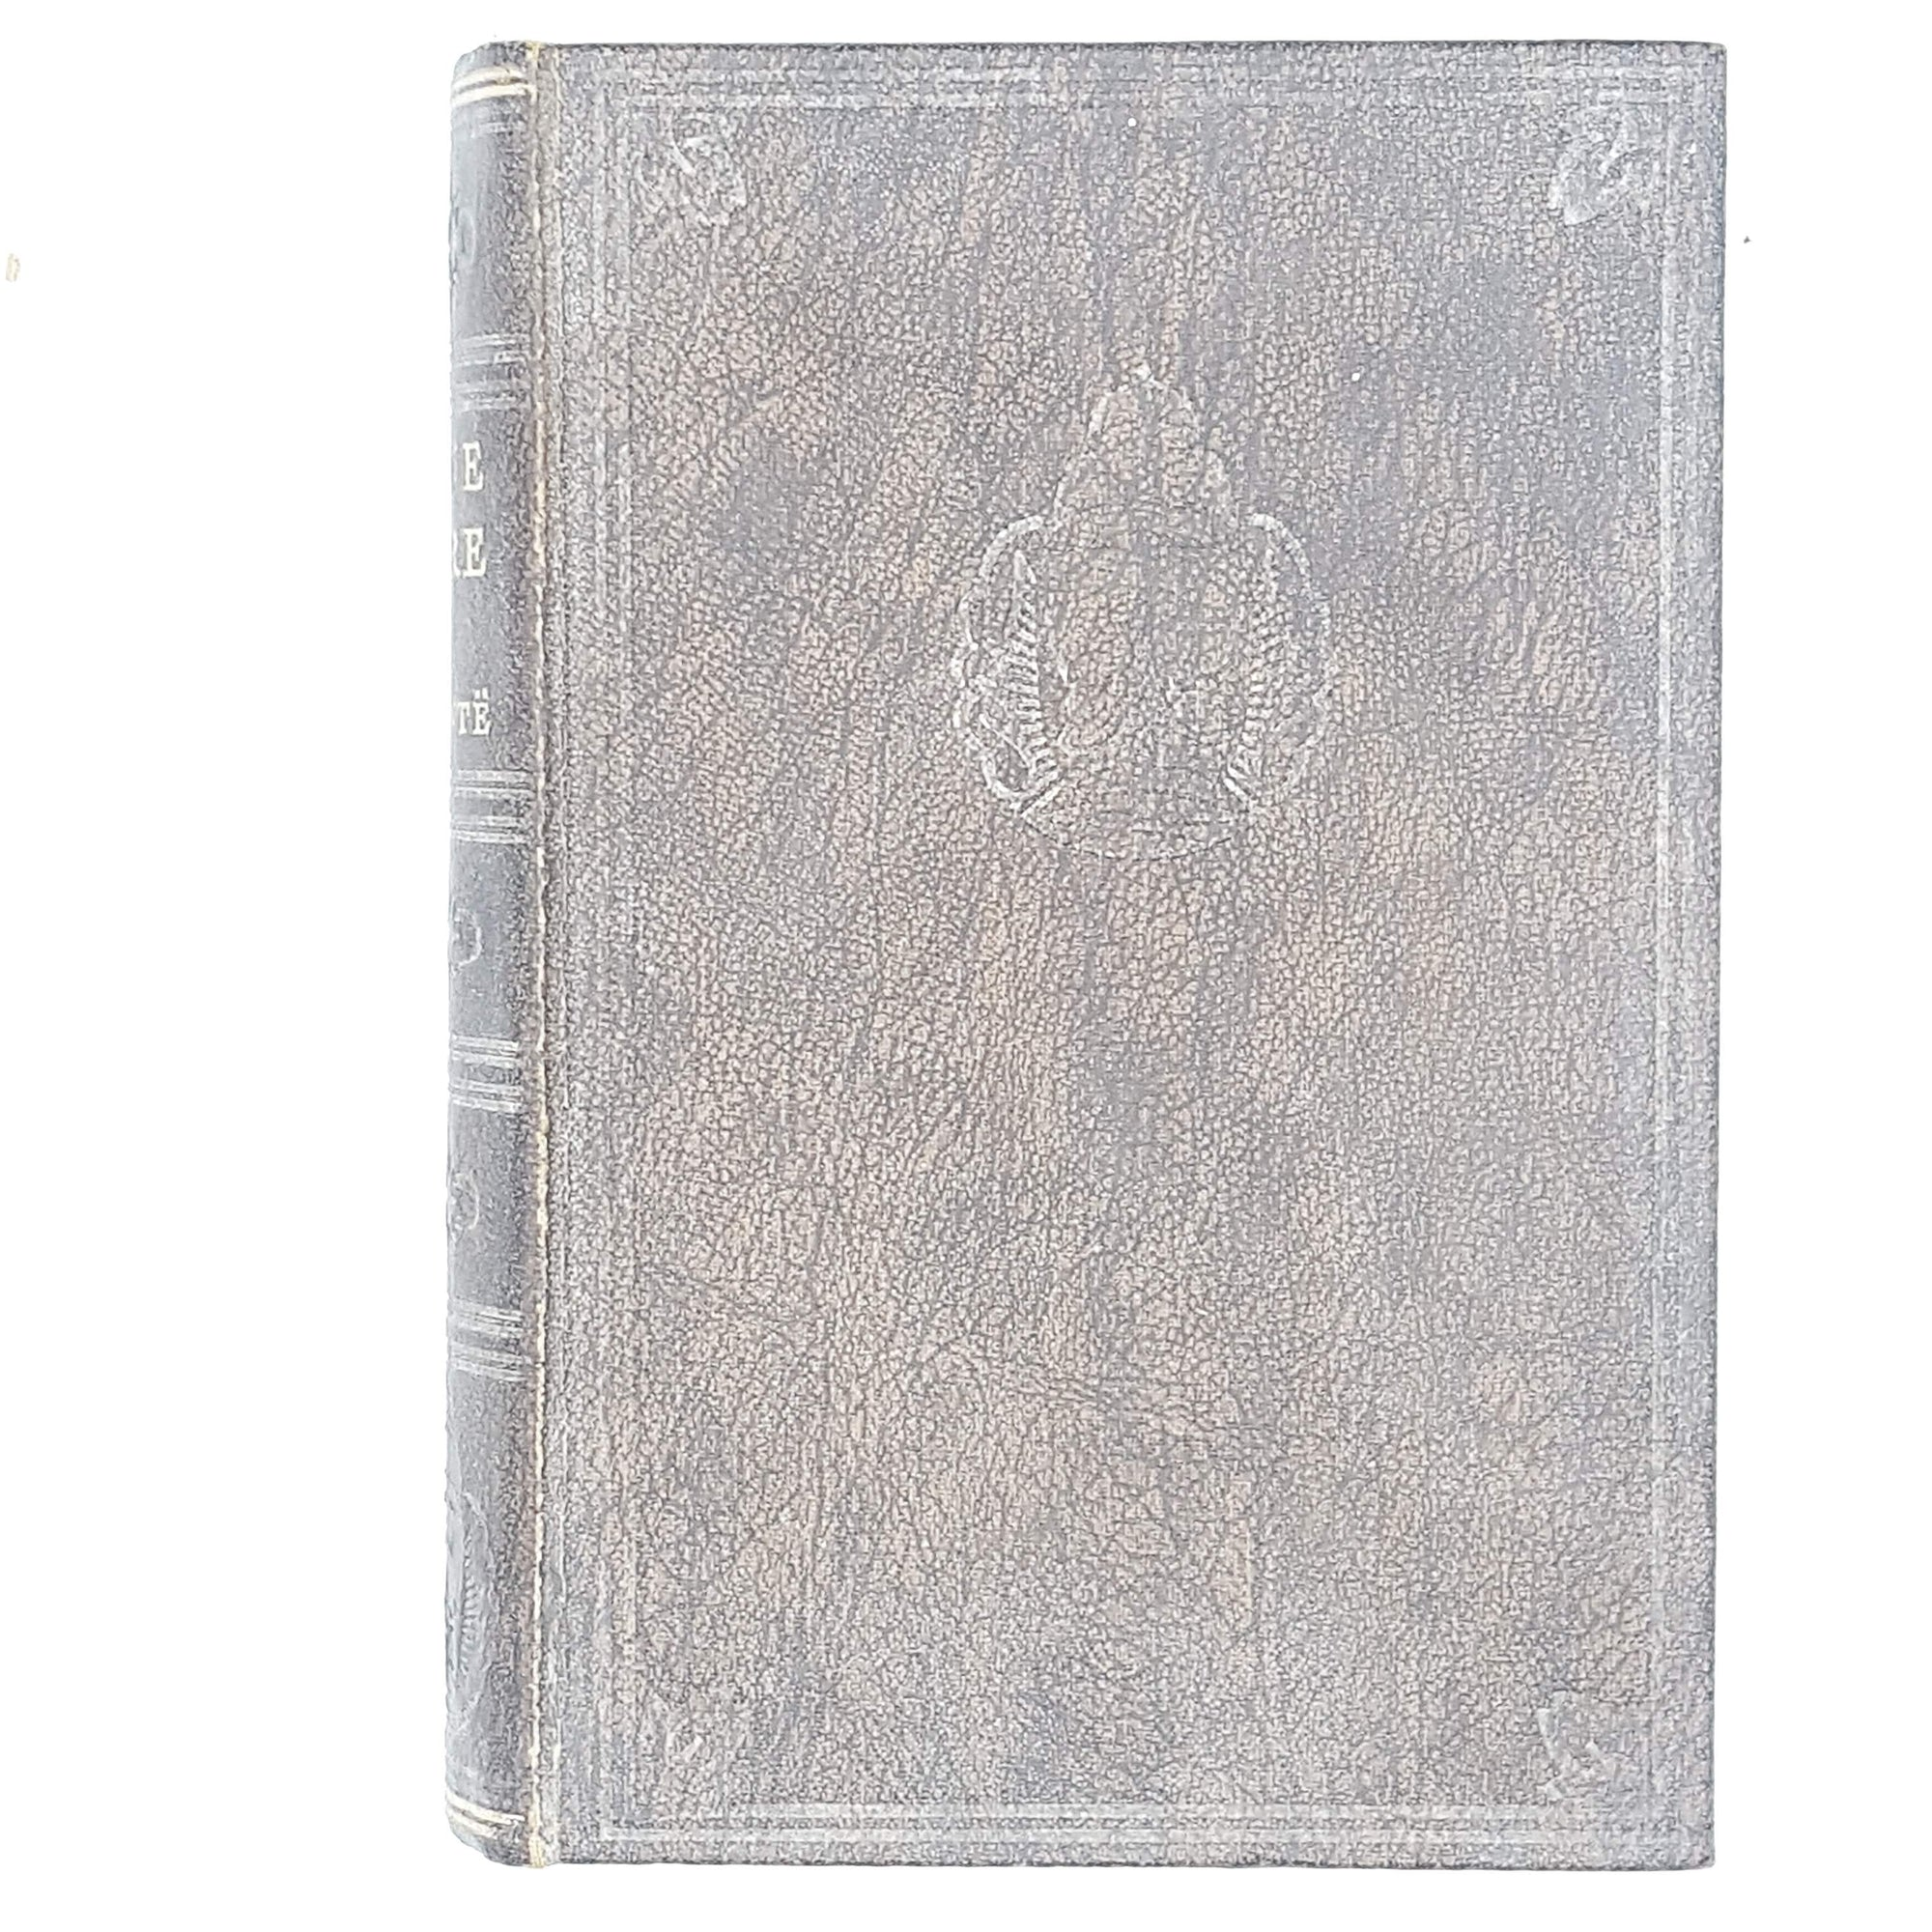 Charlotte Brontë's Jane Eyre Odhams Press ltd.